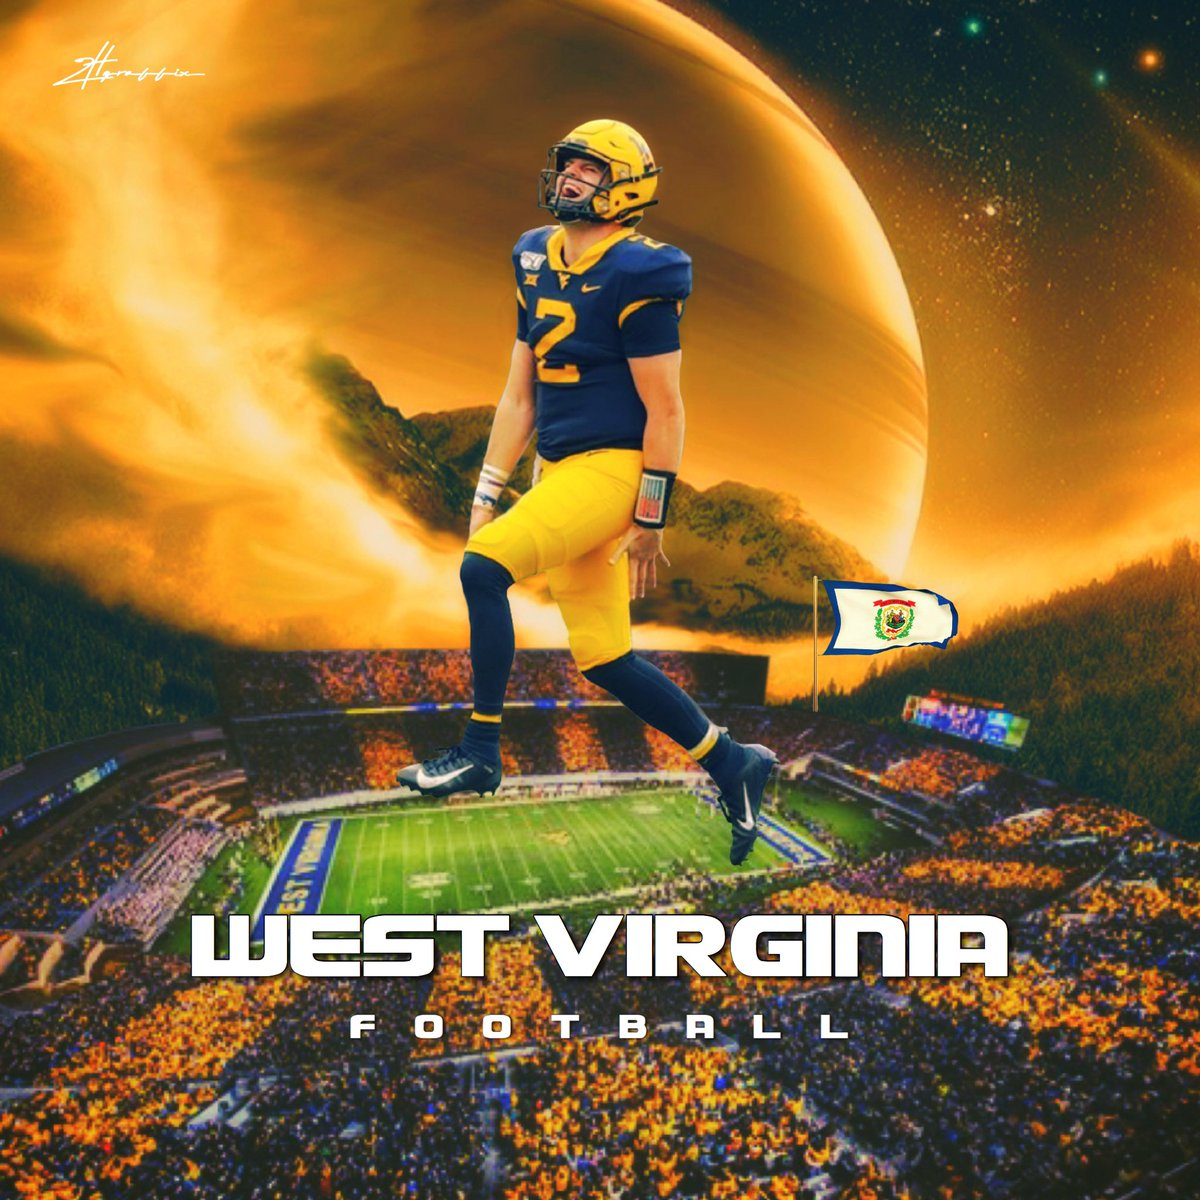 What does the future hold for @WVUfootball ?  I believe it's bright! <br>http://pic.twitter.com/S3YWI7L8qK